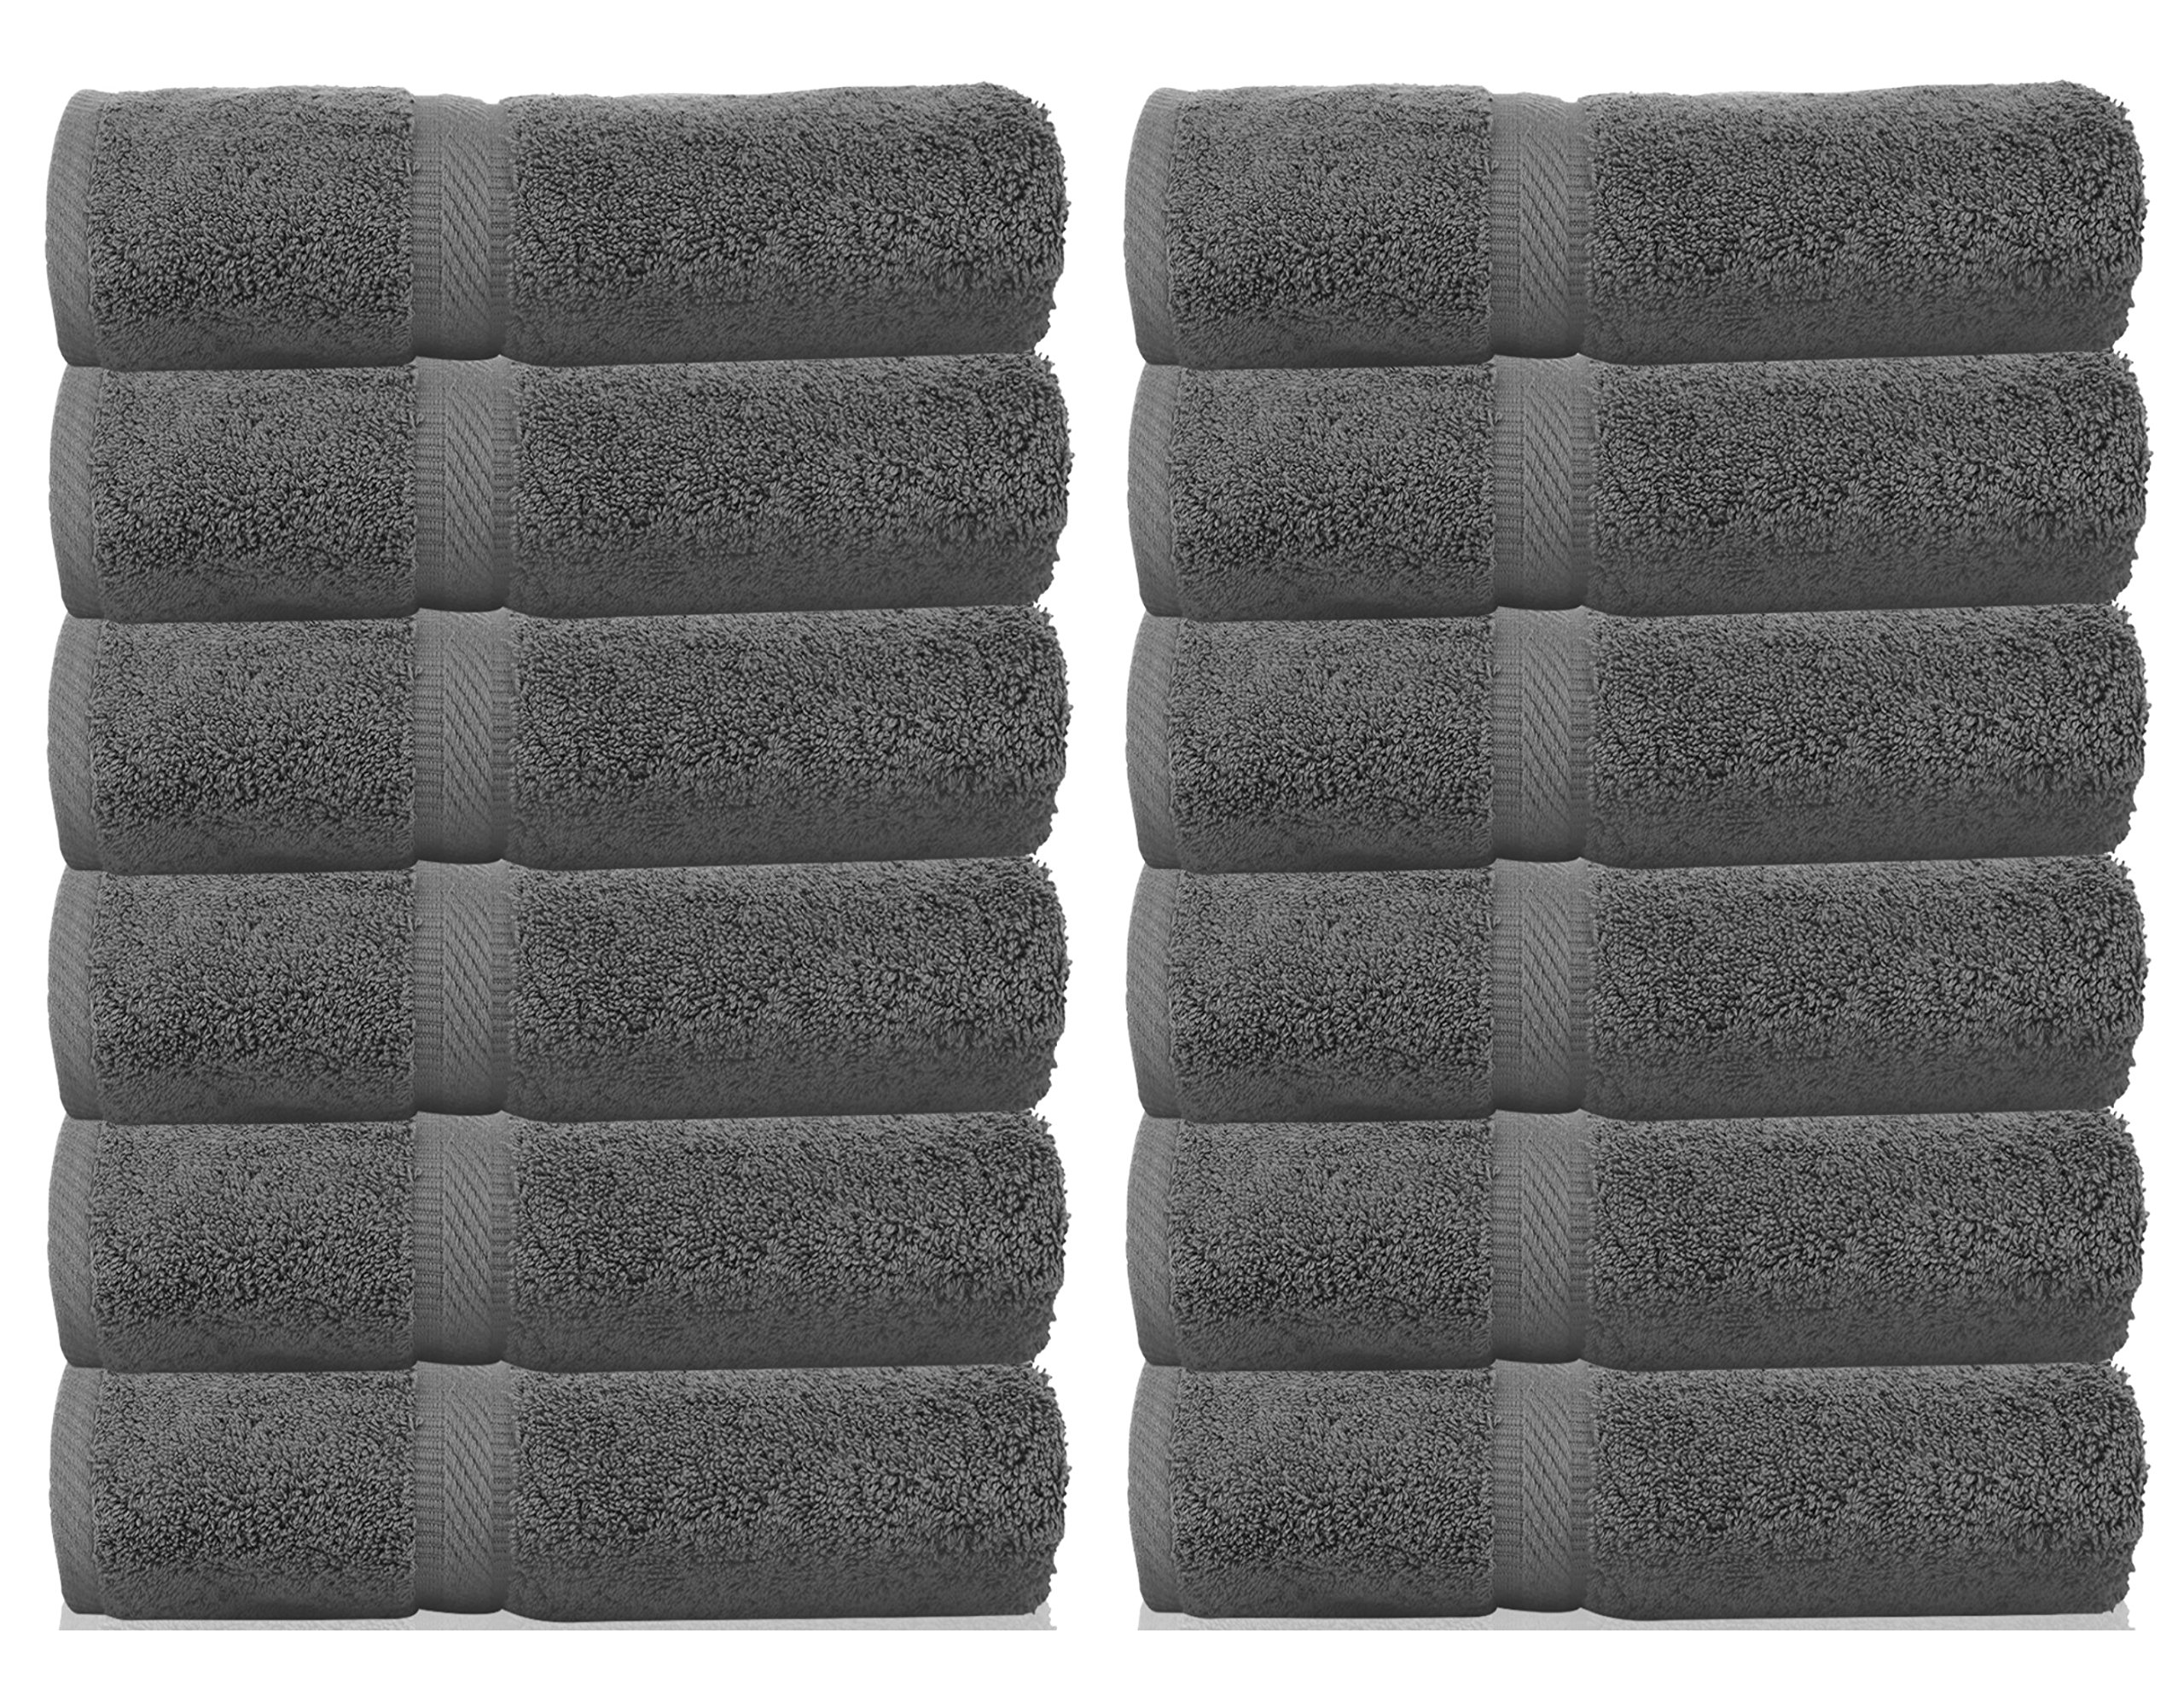 White Classic Luxury Washcloths for Bathroom-Hotel-Spa-Kitchen-Set - Circlet Egyptian Cotton - Highly Absorbent Hotel Quality Face Towels - Set of 12 (Washcloths 13x13, Grey)